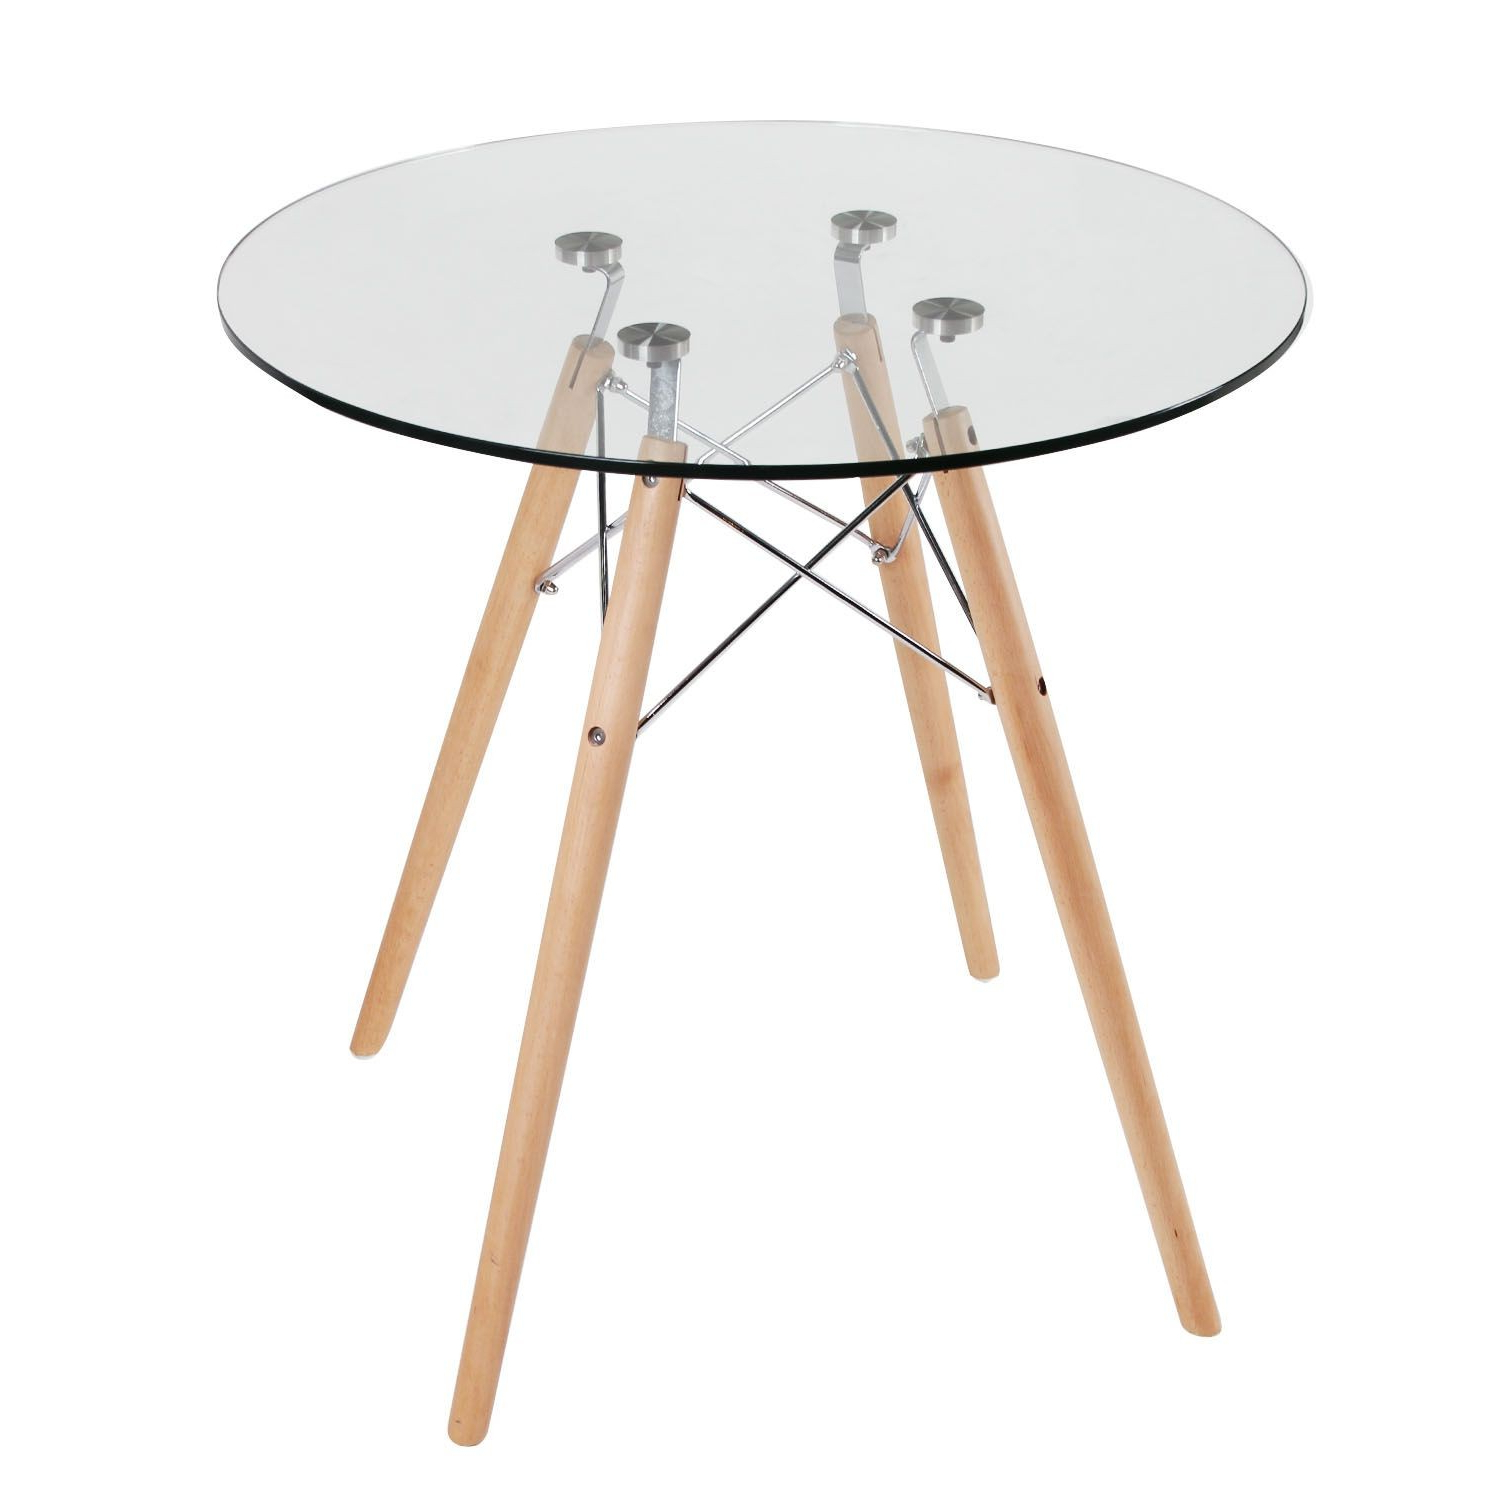 Recent Replica Eames Eiffel Wood Leg Table pertaining to Eames Style Dining Tables With Chromed Leg And Tempered Glass Top